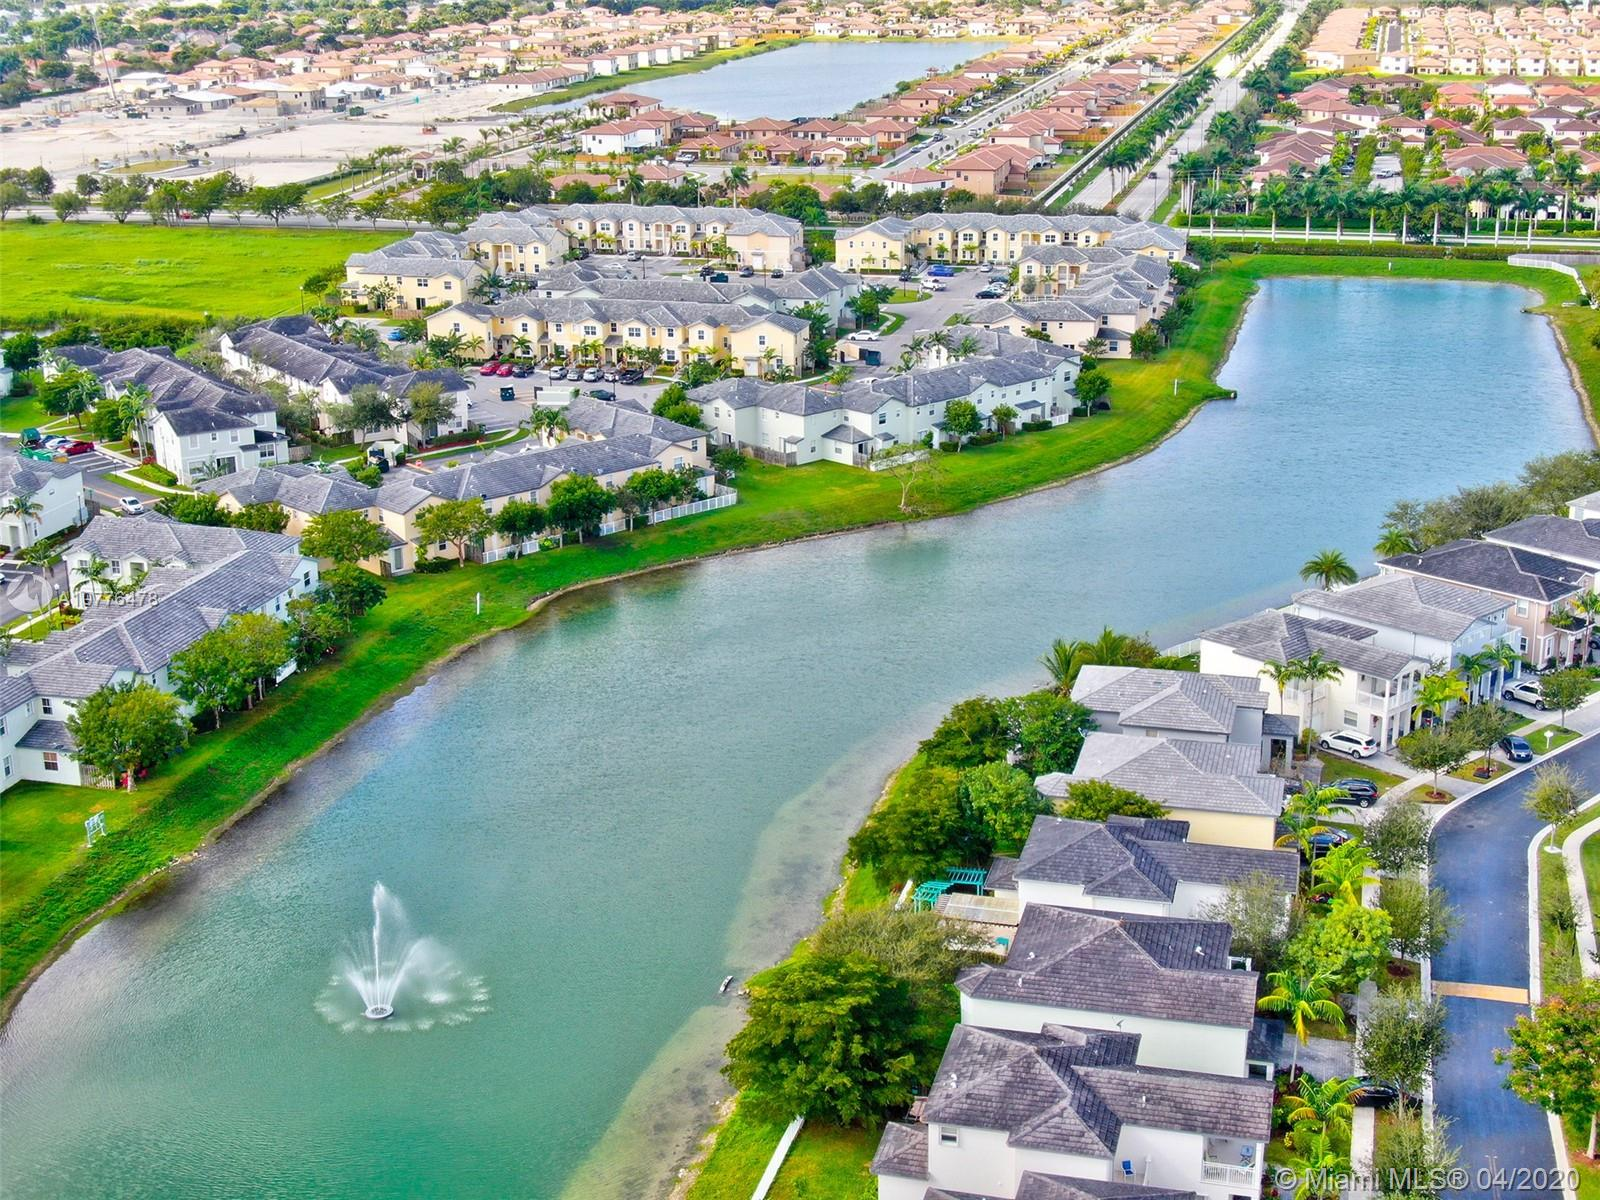 2819 SE 1st Dr #11, Homestead, FL 33033 - Homestead, FL real estate listing